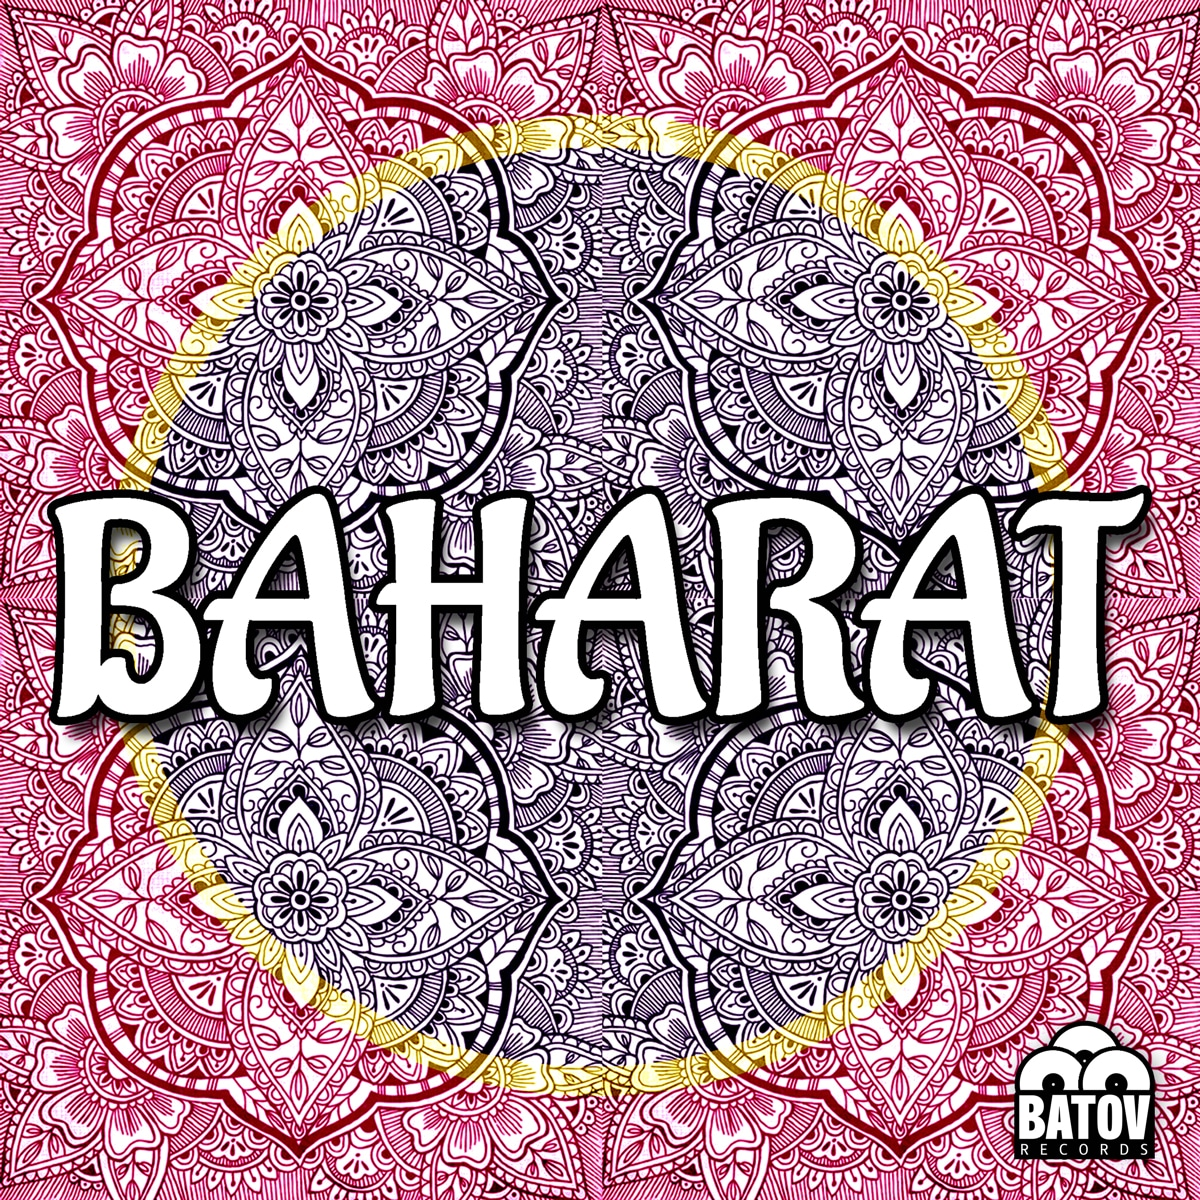 Baharat - Baharat - Band - Batov Records